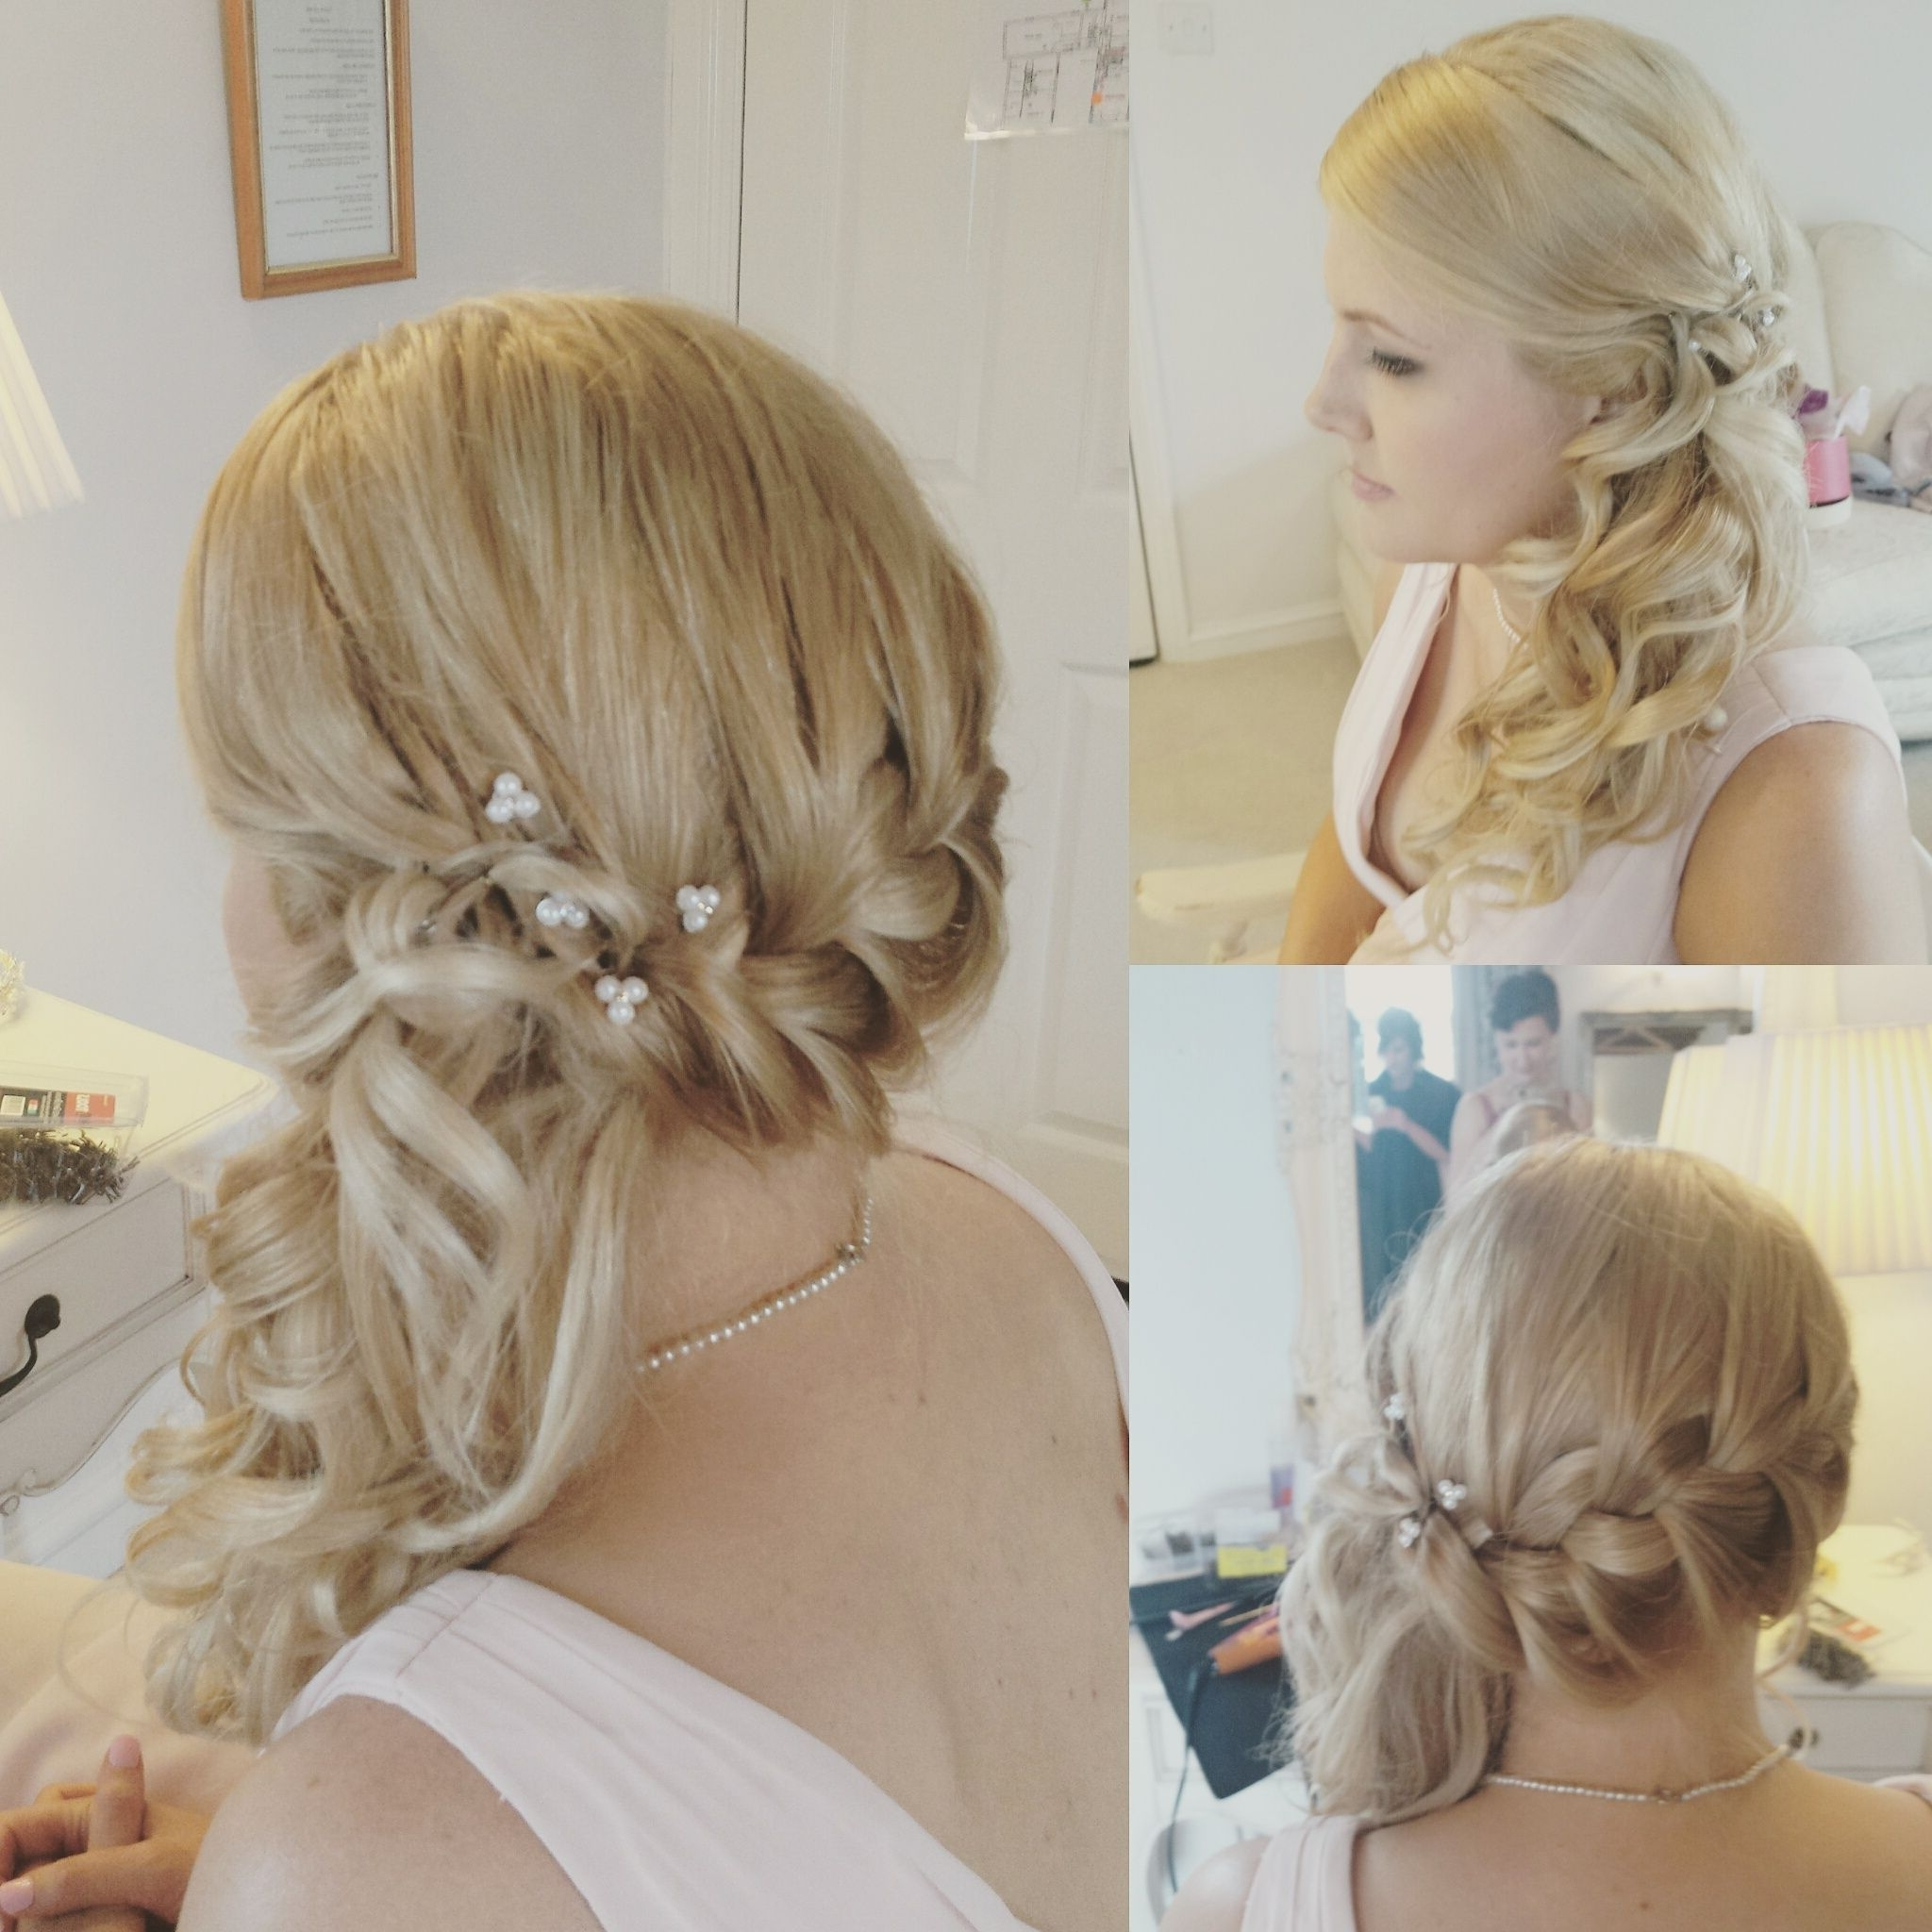 Plaits And Curls Bridal Hair Look. Norwich (View 11 of 15)